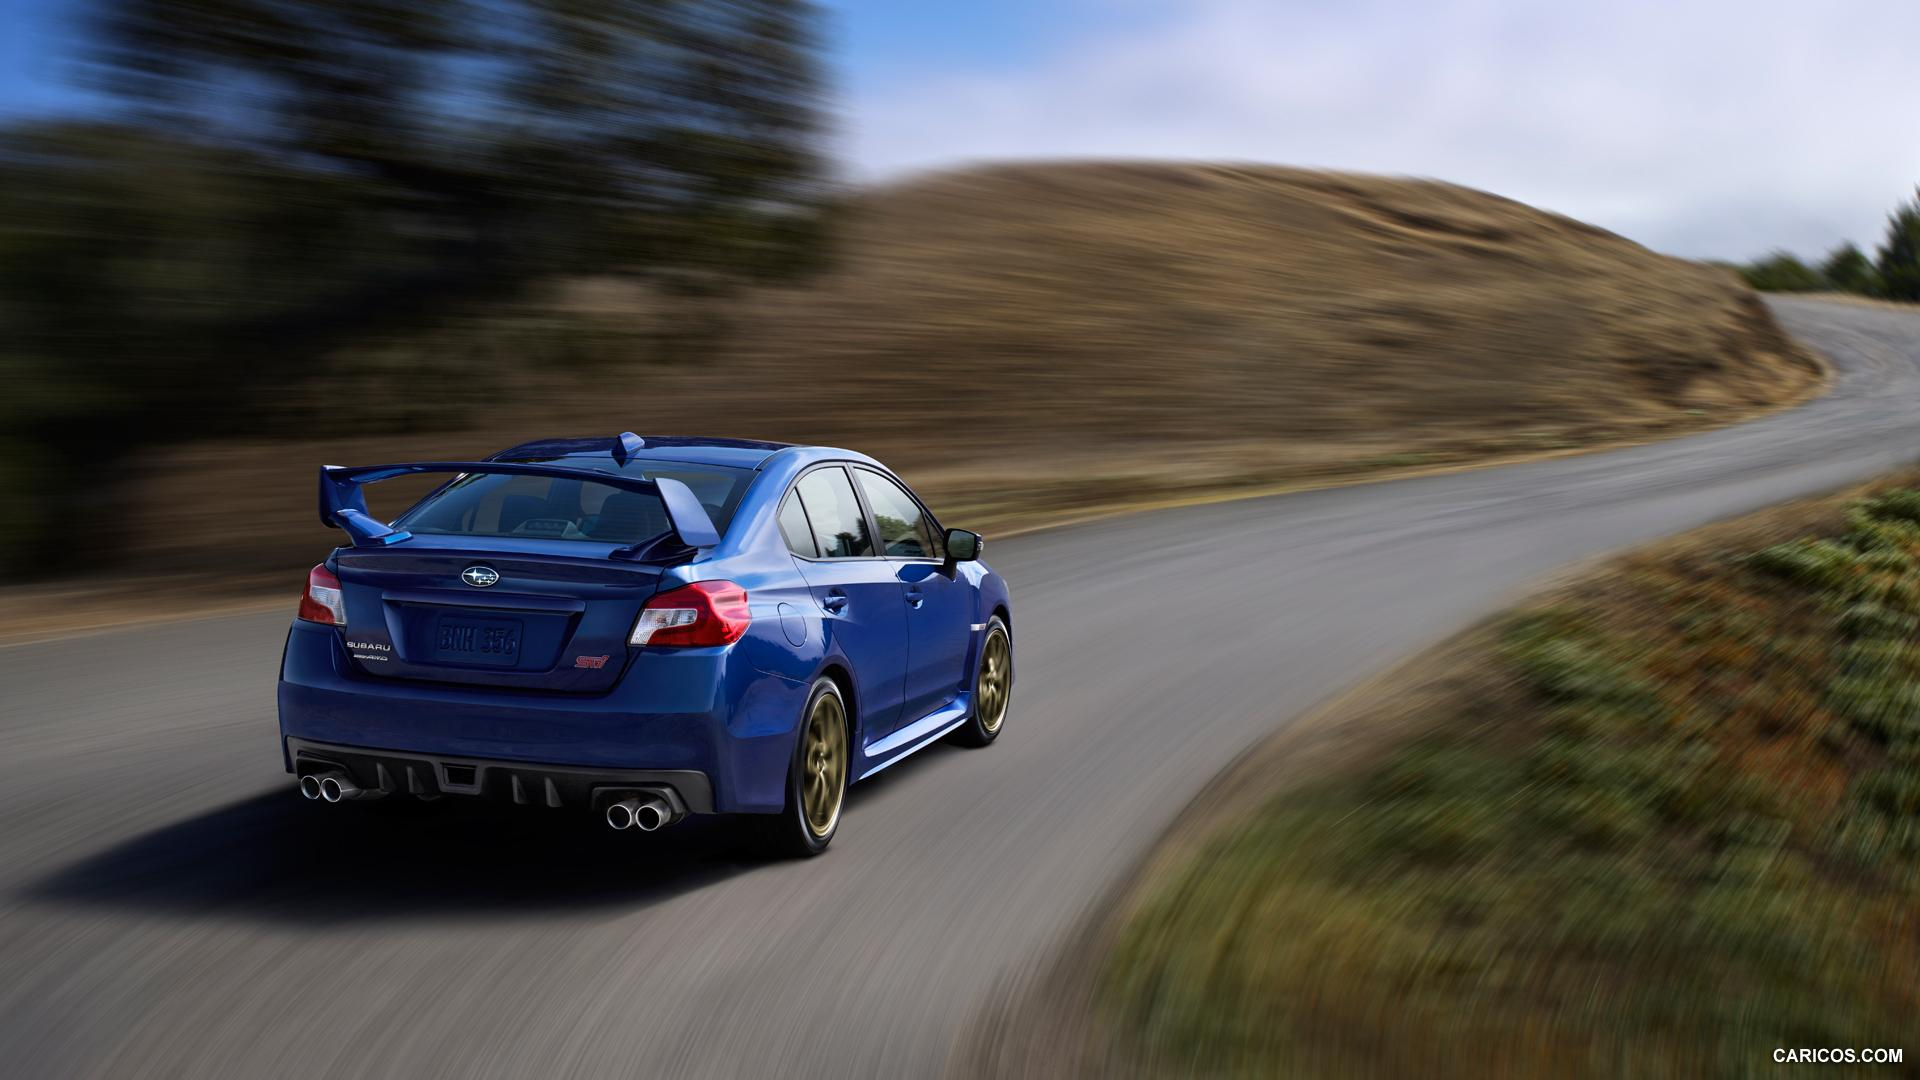 2015 Subaru WRX STI - Rear | HD Wallpaper #6